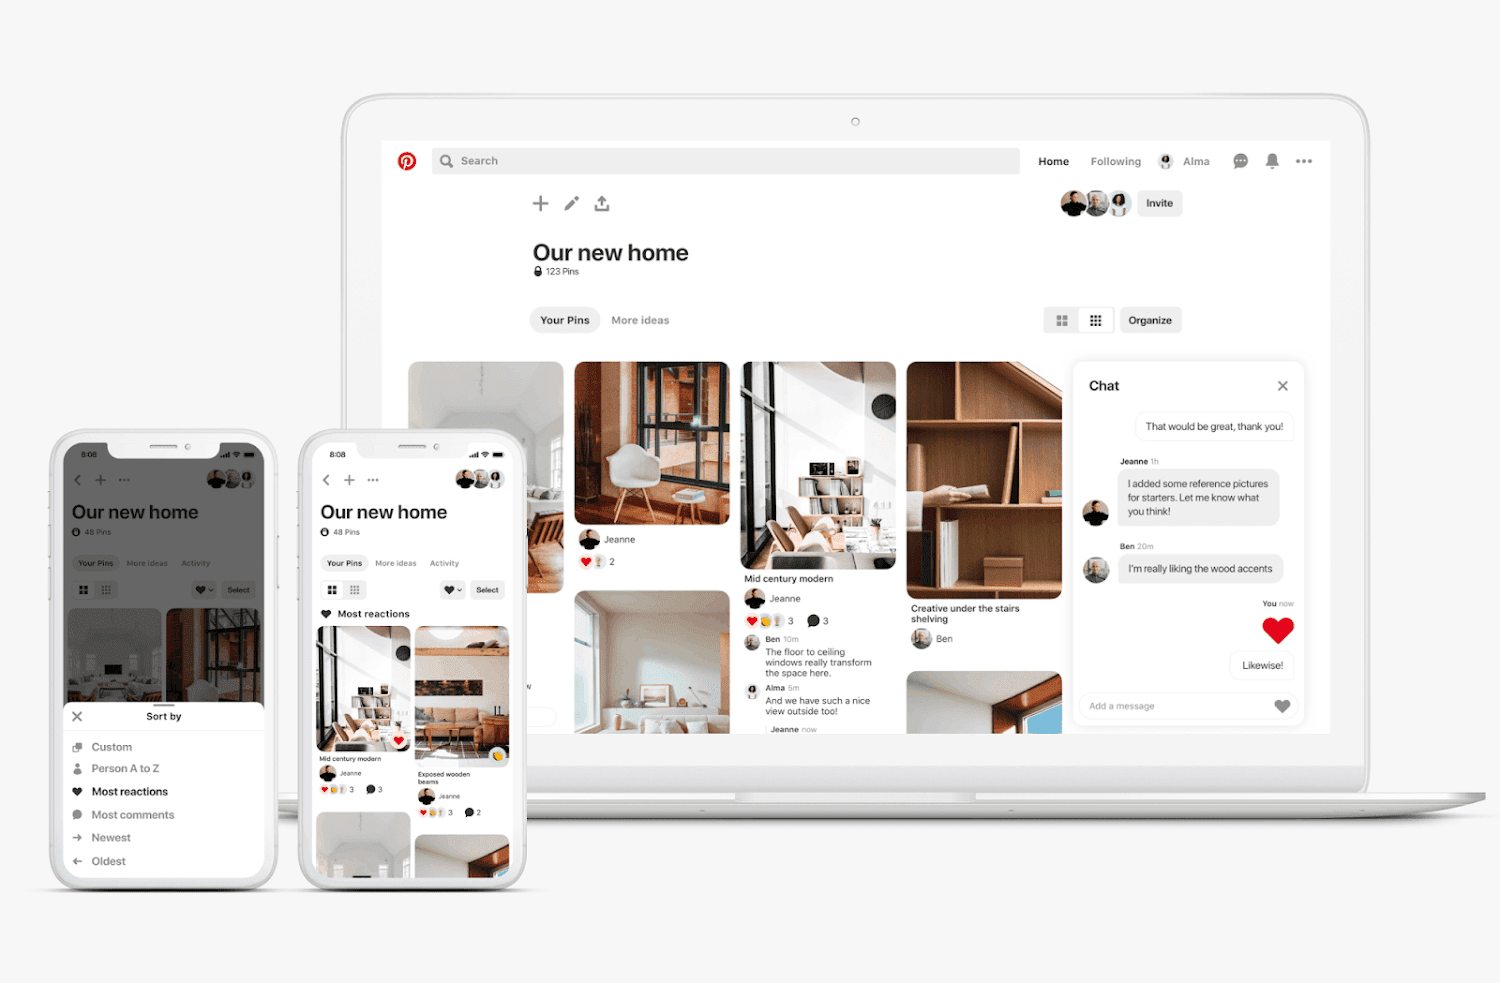 Pinterest Just Introduced A New Way For Its Users To Organize Groups And To React To The Boa Social Media Resources Social Media Pinterest Pinterest Management